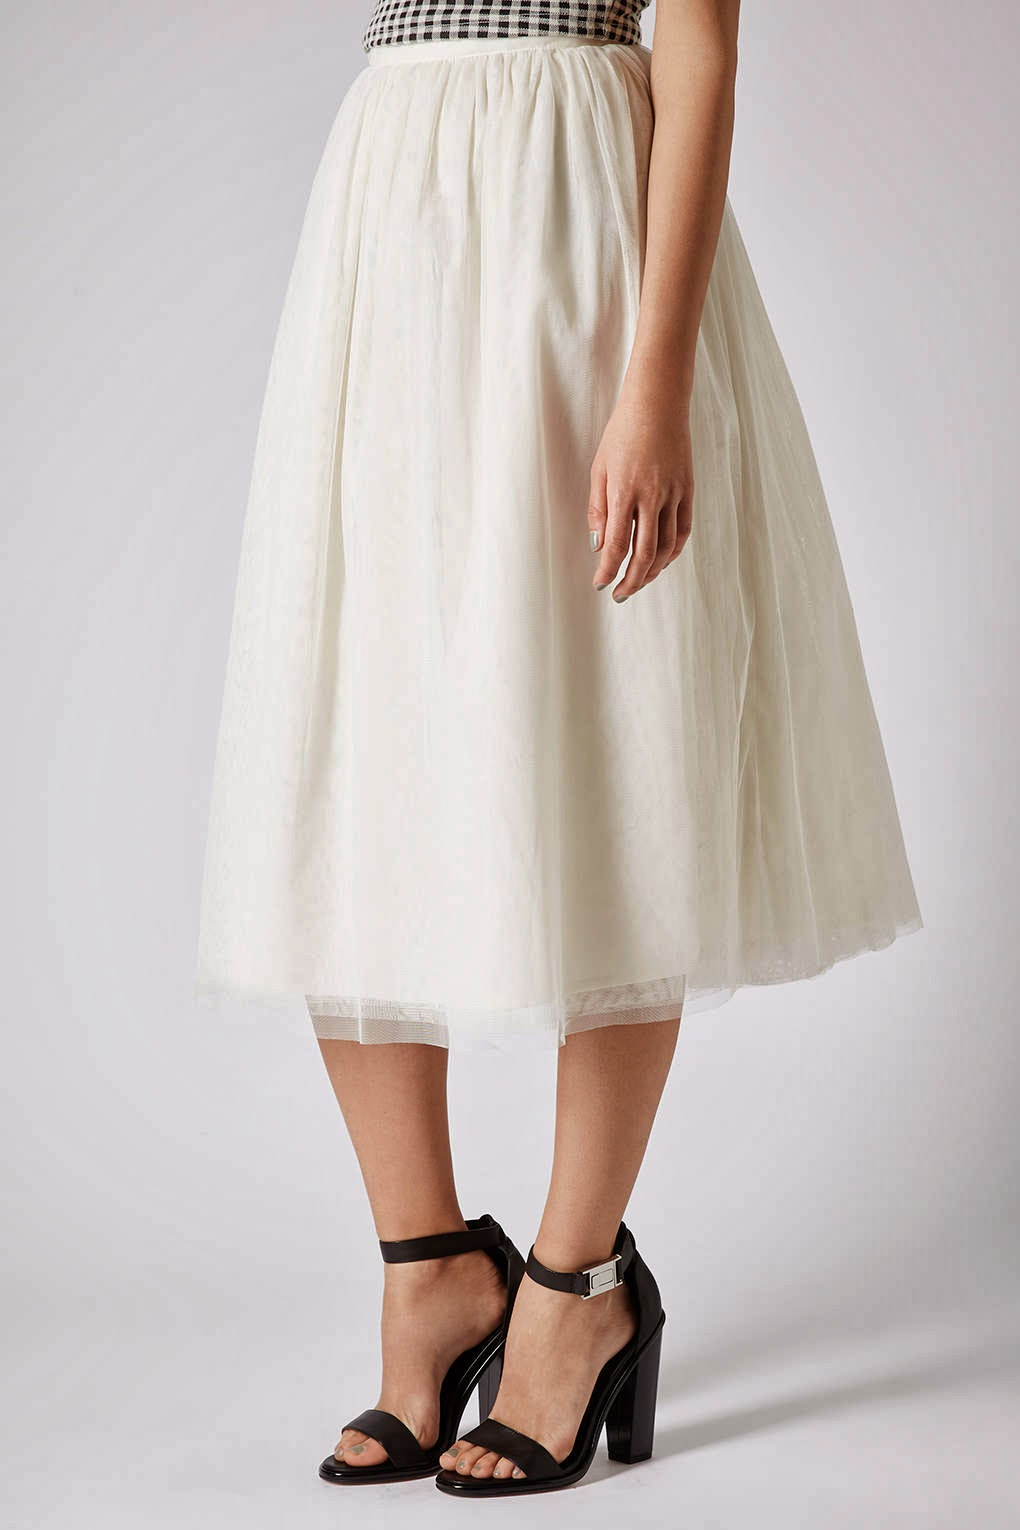 white midi tulle skirt